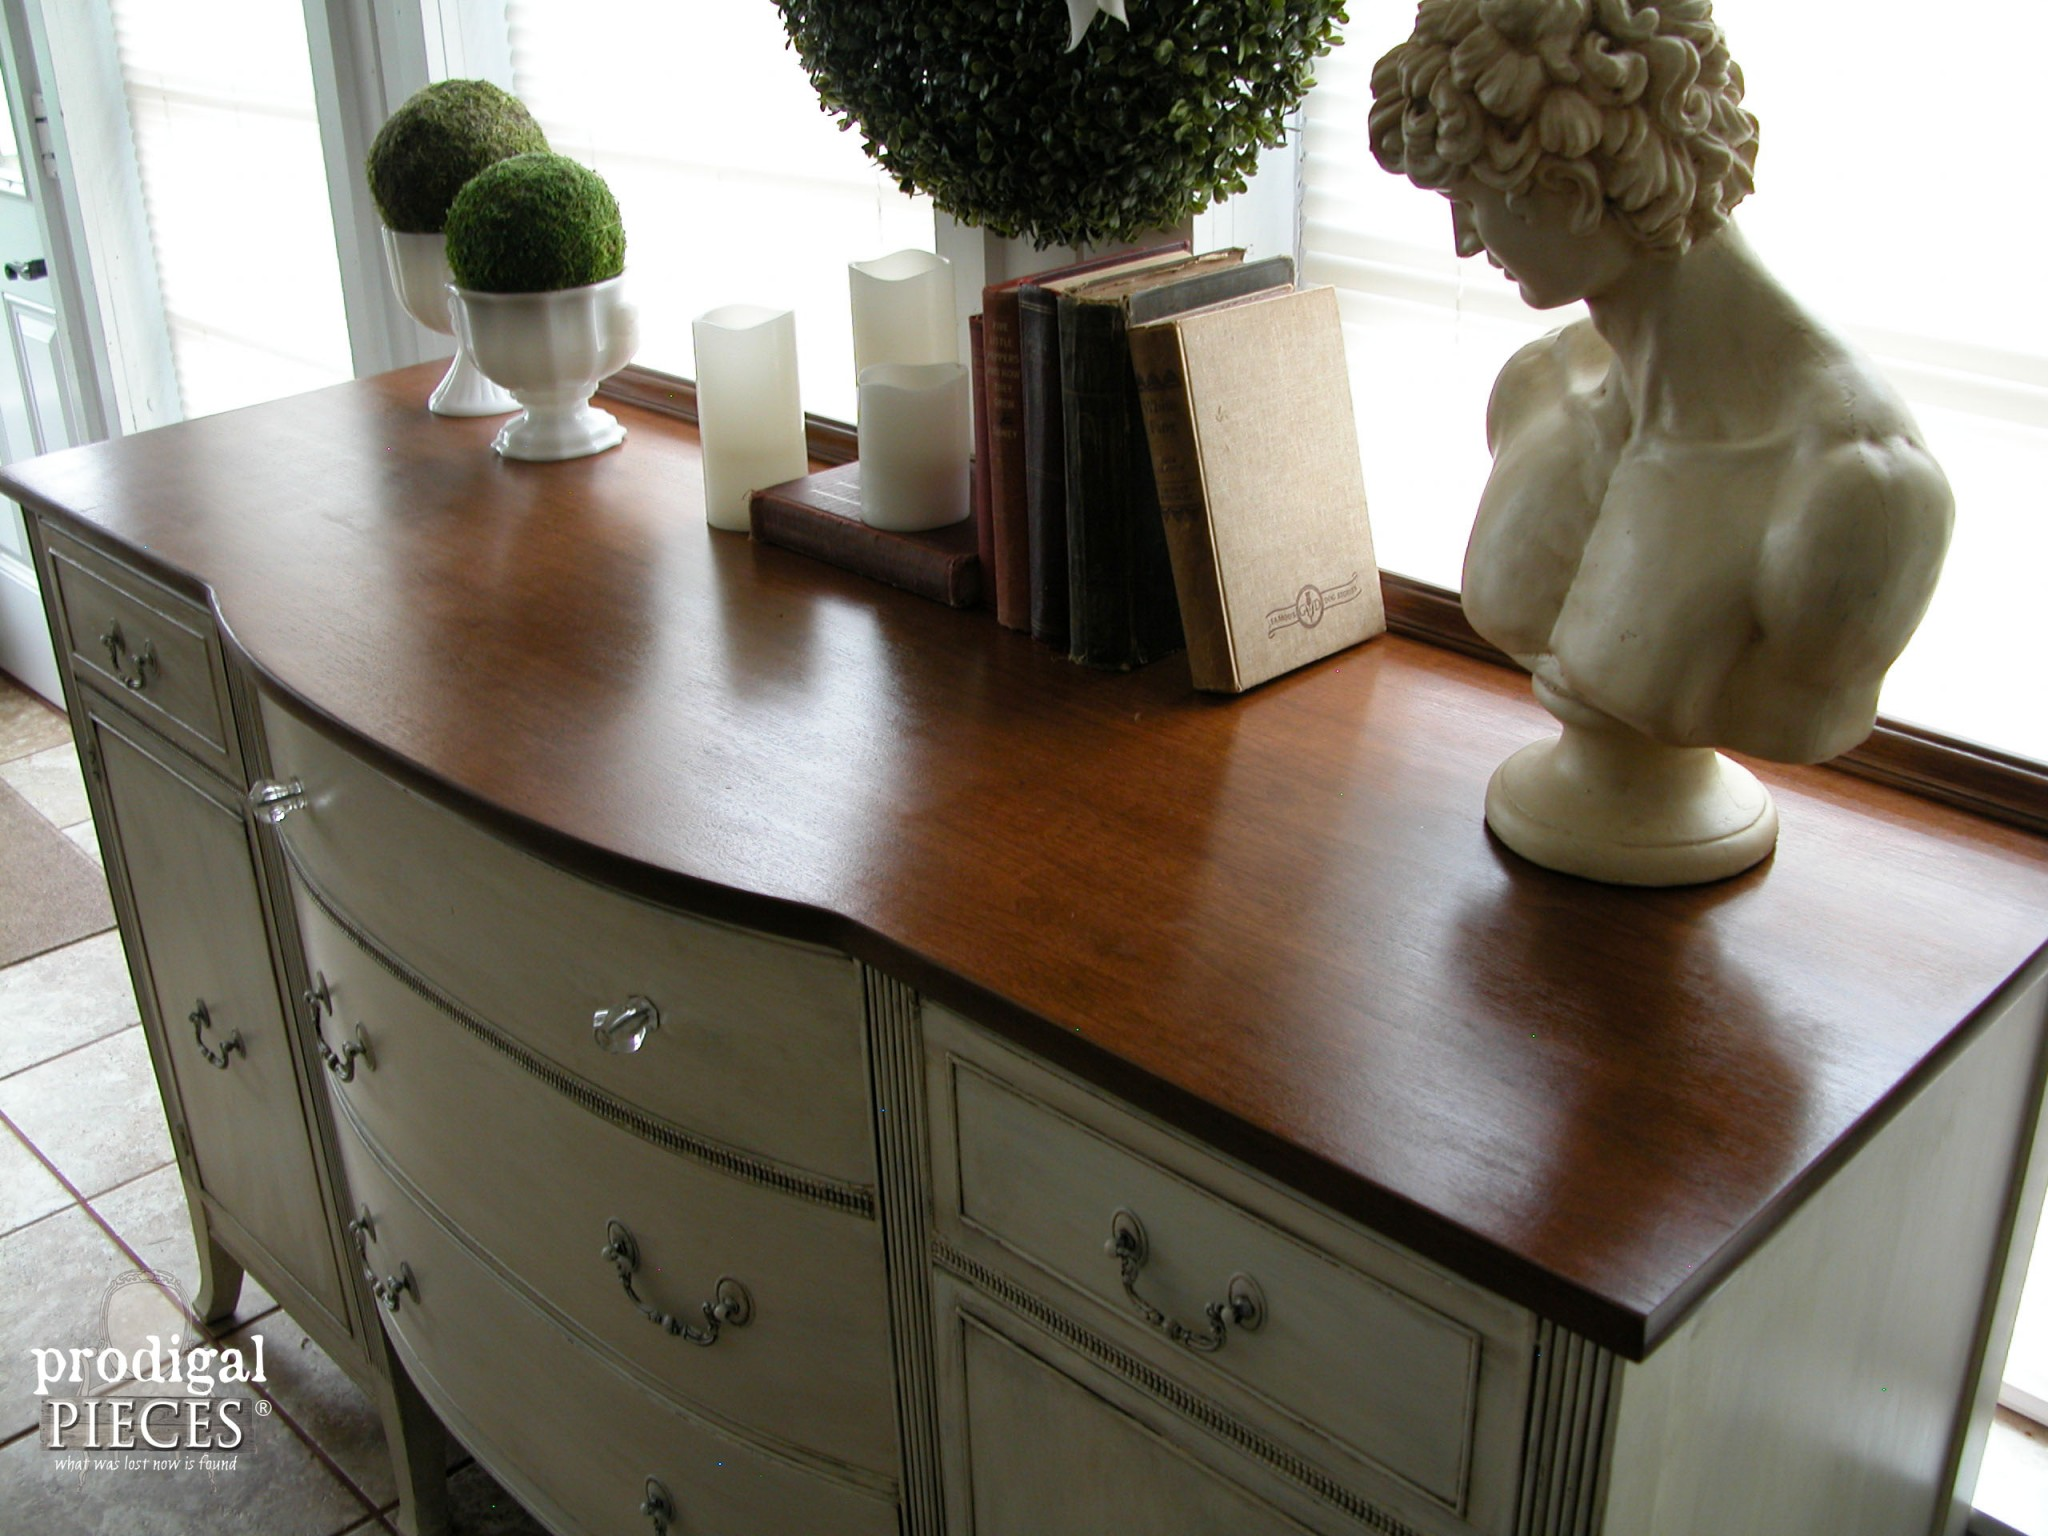 Top of Vintage Sideboard Refinished by Prodigal Pieces | www.prodigalpieces.com